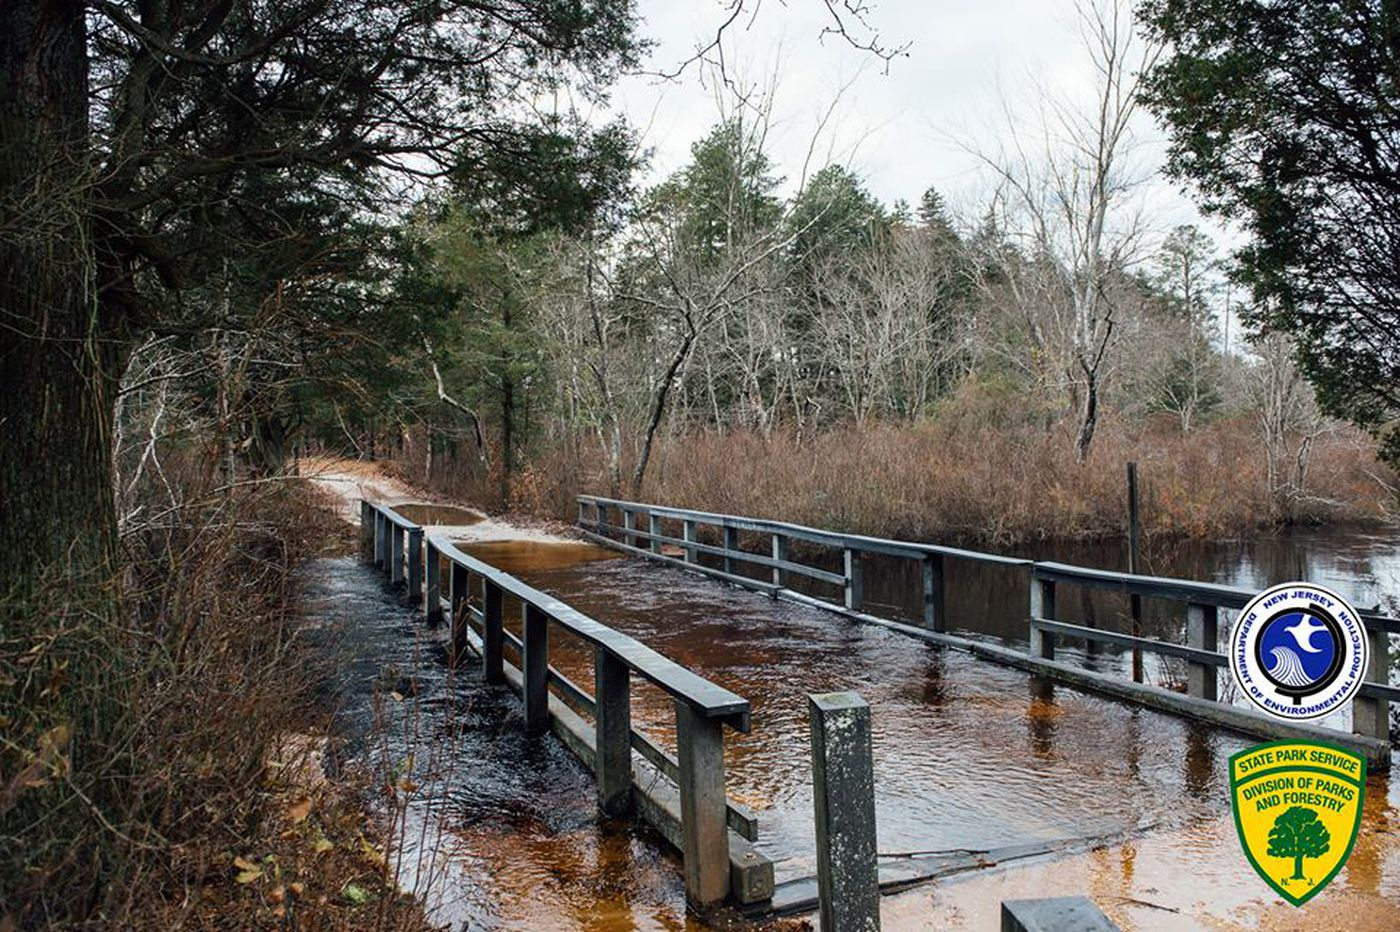 NJ to campers, state park visitors: Stay away for now